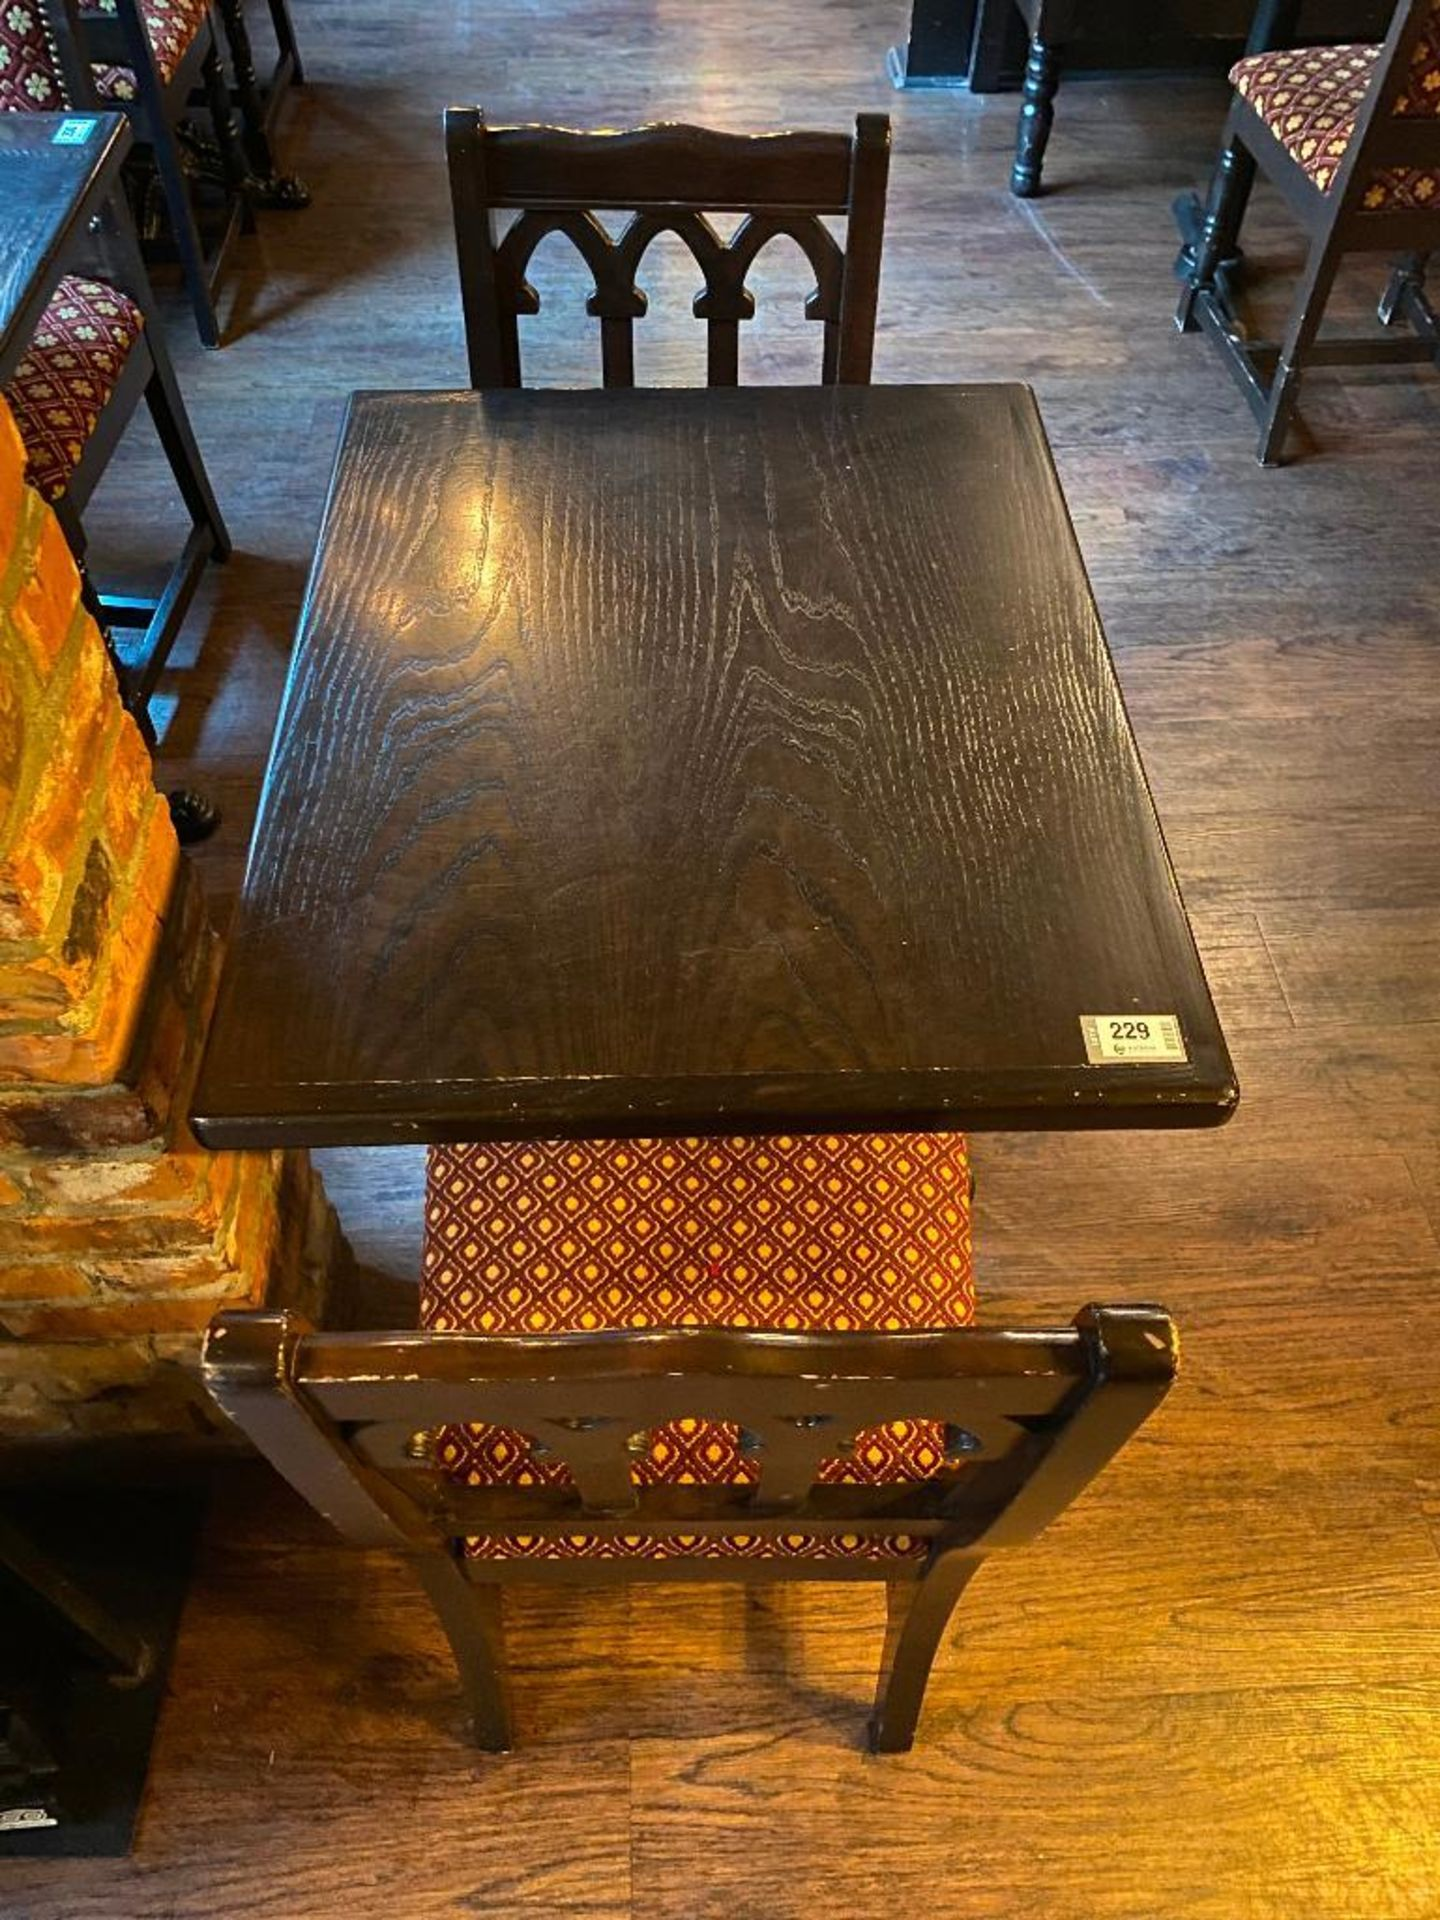 """30"""" X 24"""" WOOD TOP TABLE WITH 2 CHAIRS - 30"""" X 24"""" X 29.5"""" - Image 2 of 2"""